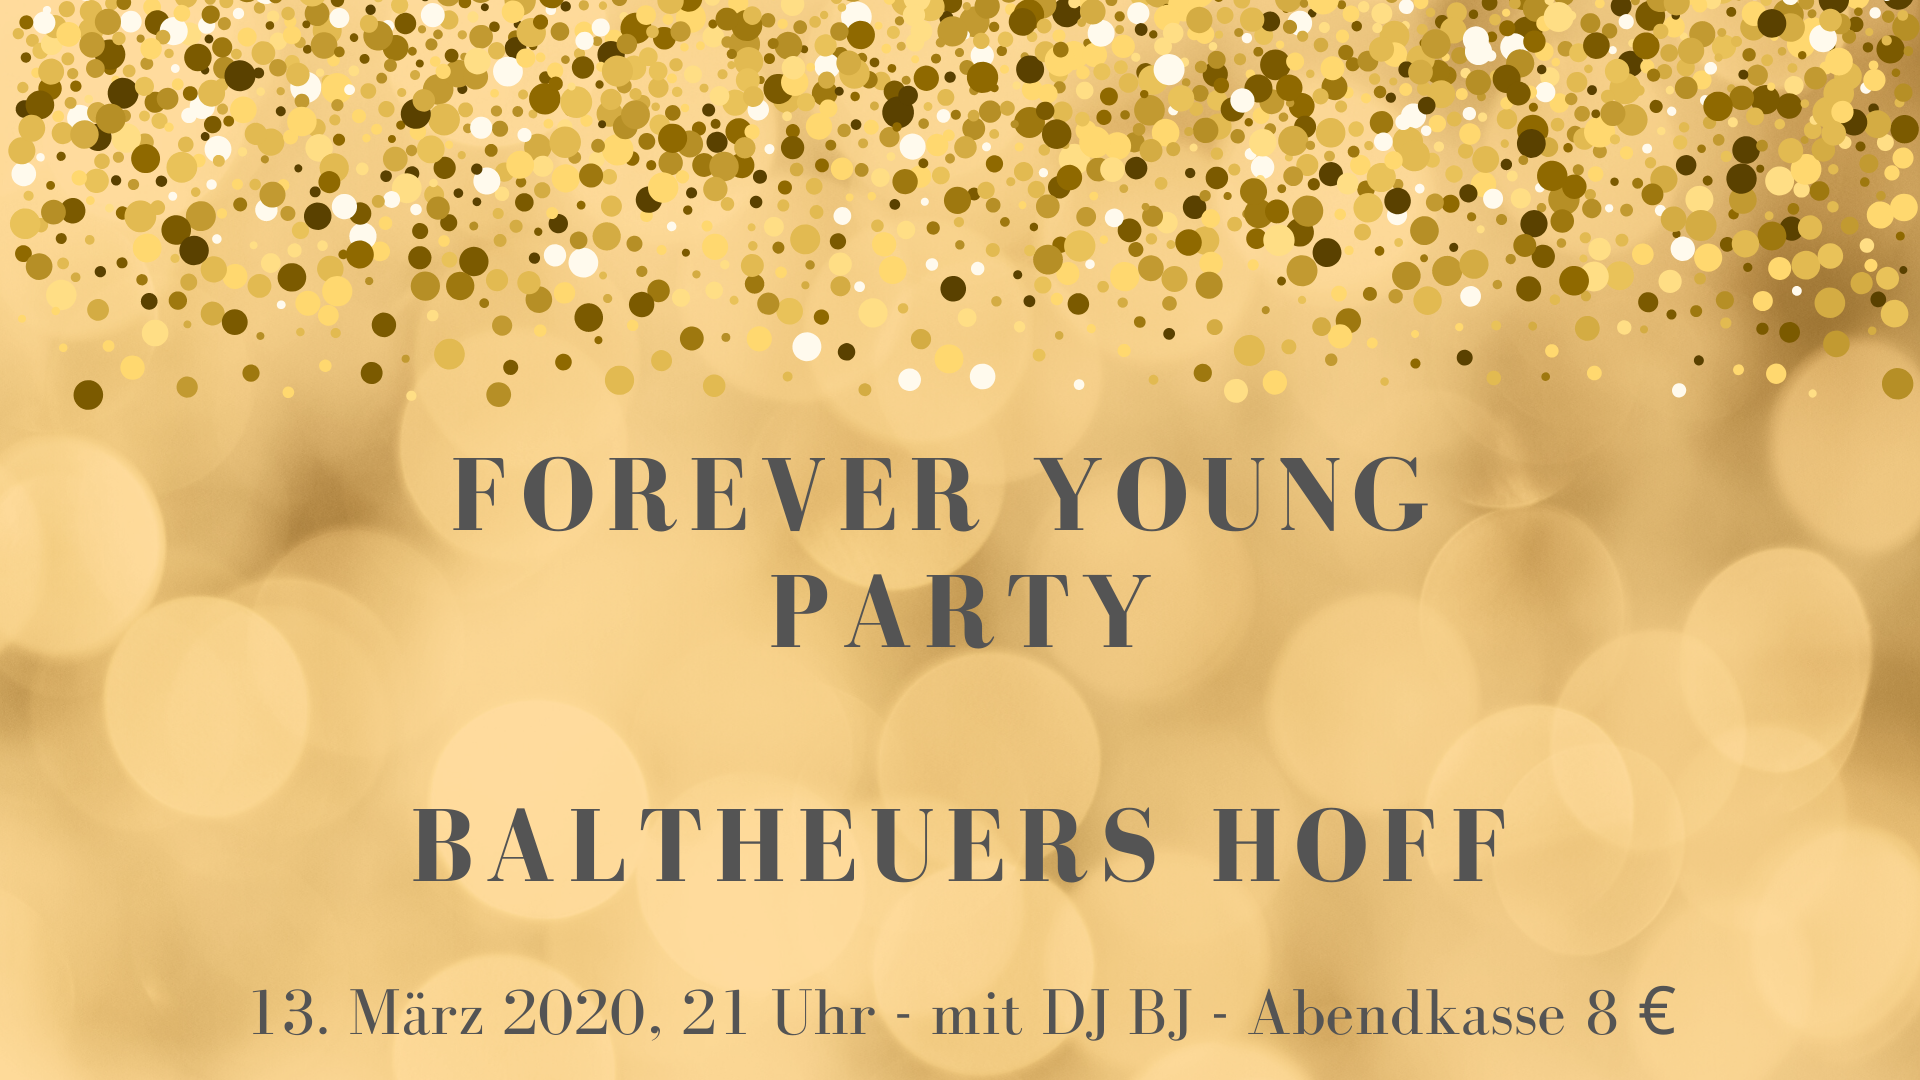 Forever Young Party 13. März 2020